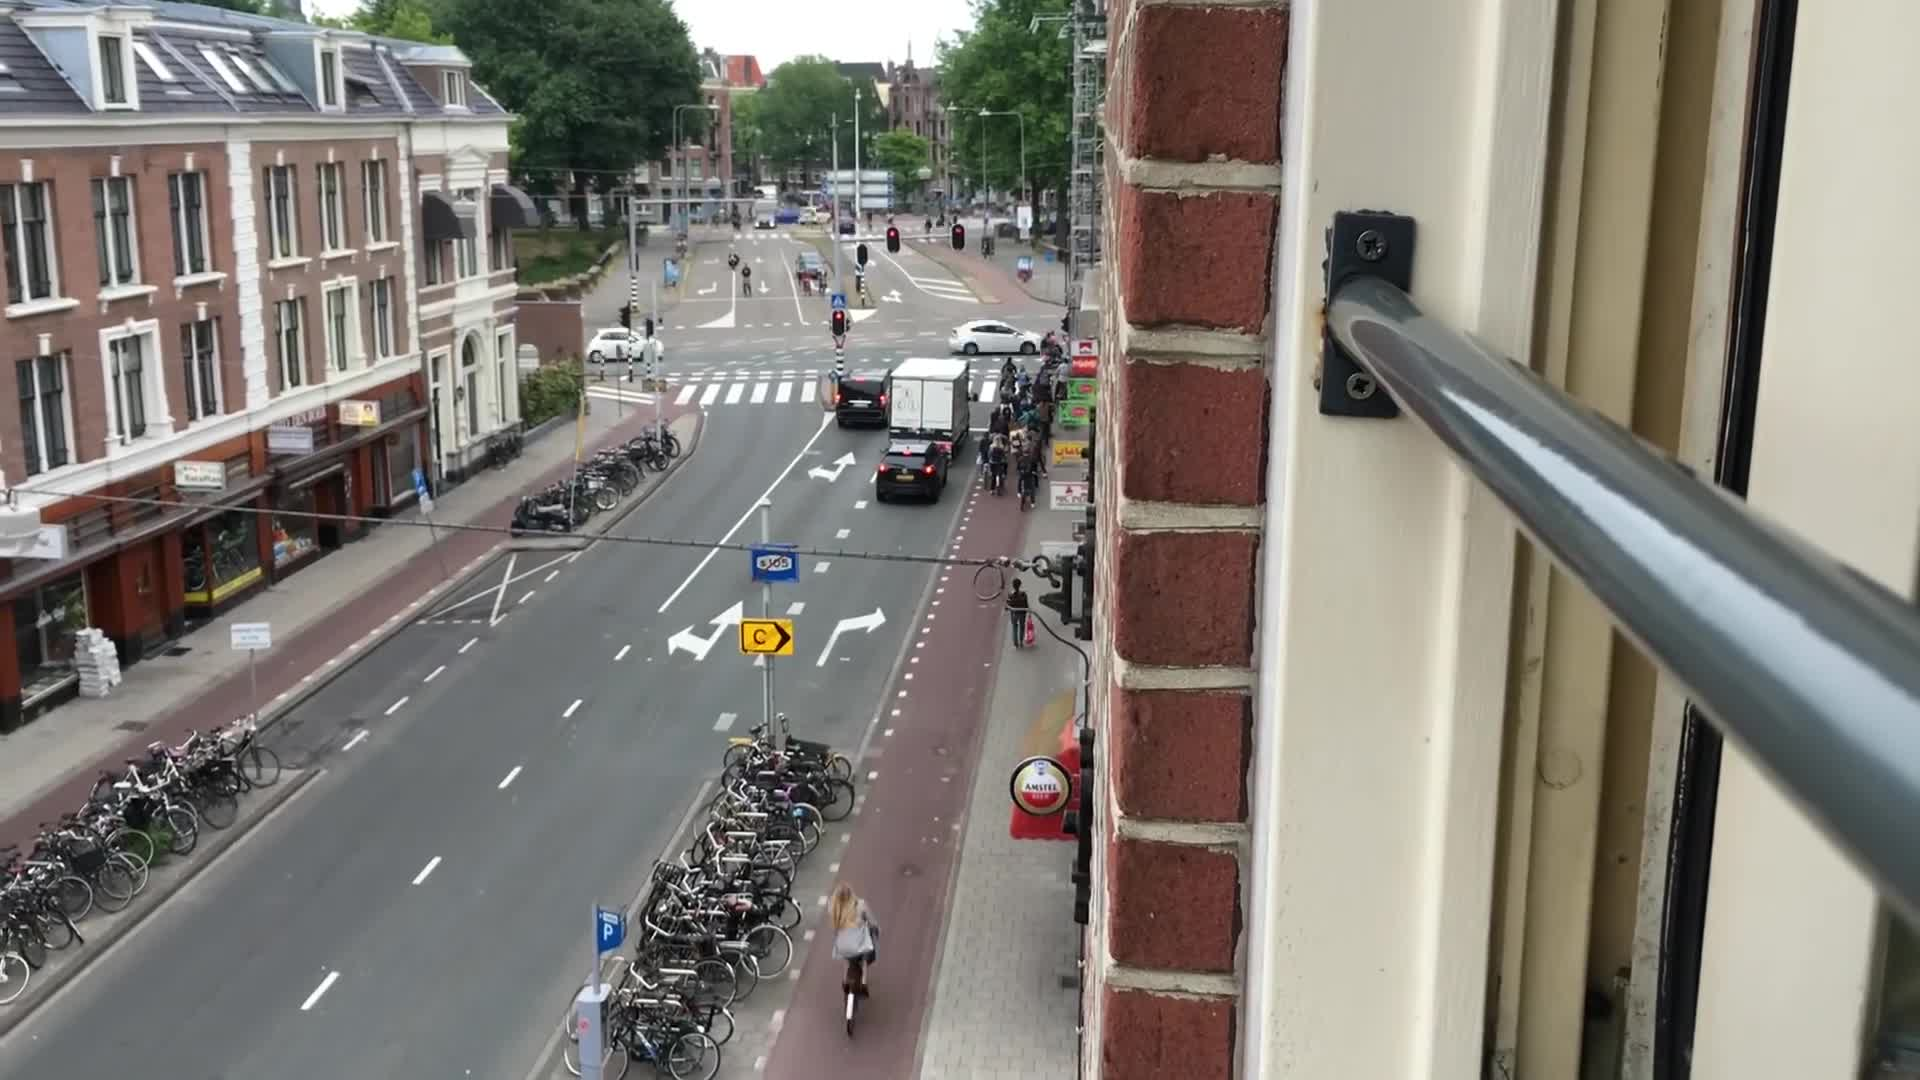 Rush hour in Amsterdam GIFs